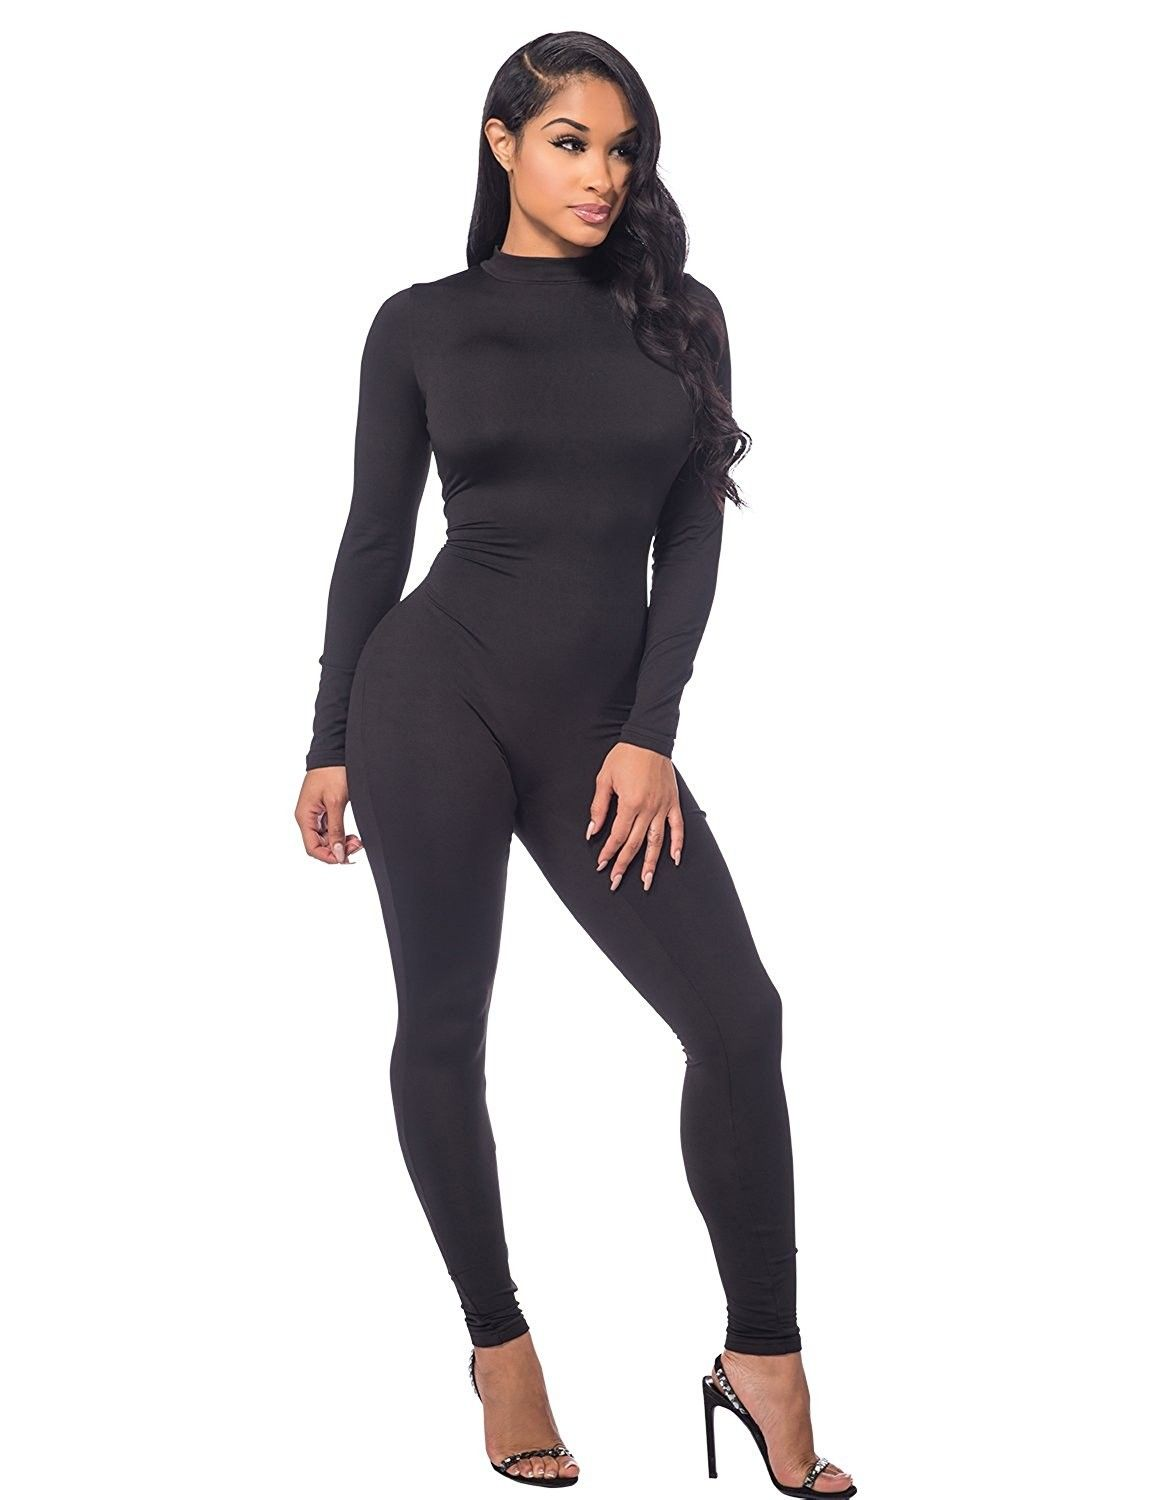 a9b95c328b280e Women's Clothing, Jumpsuits, Rompers & Overalls, Women Autumn Long Sleeve  High Neck Bodycon Tight Full Length Jumpsuits Rompers - Black - CB184HWRAQL  ...